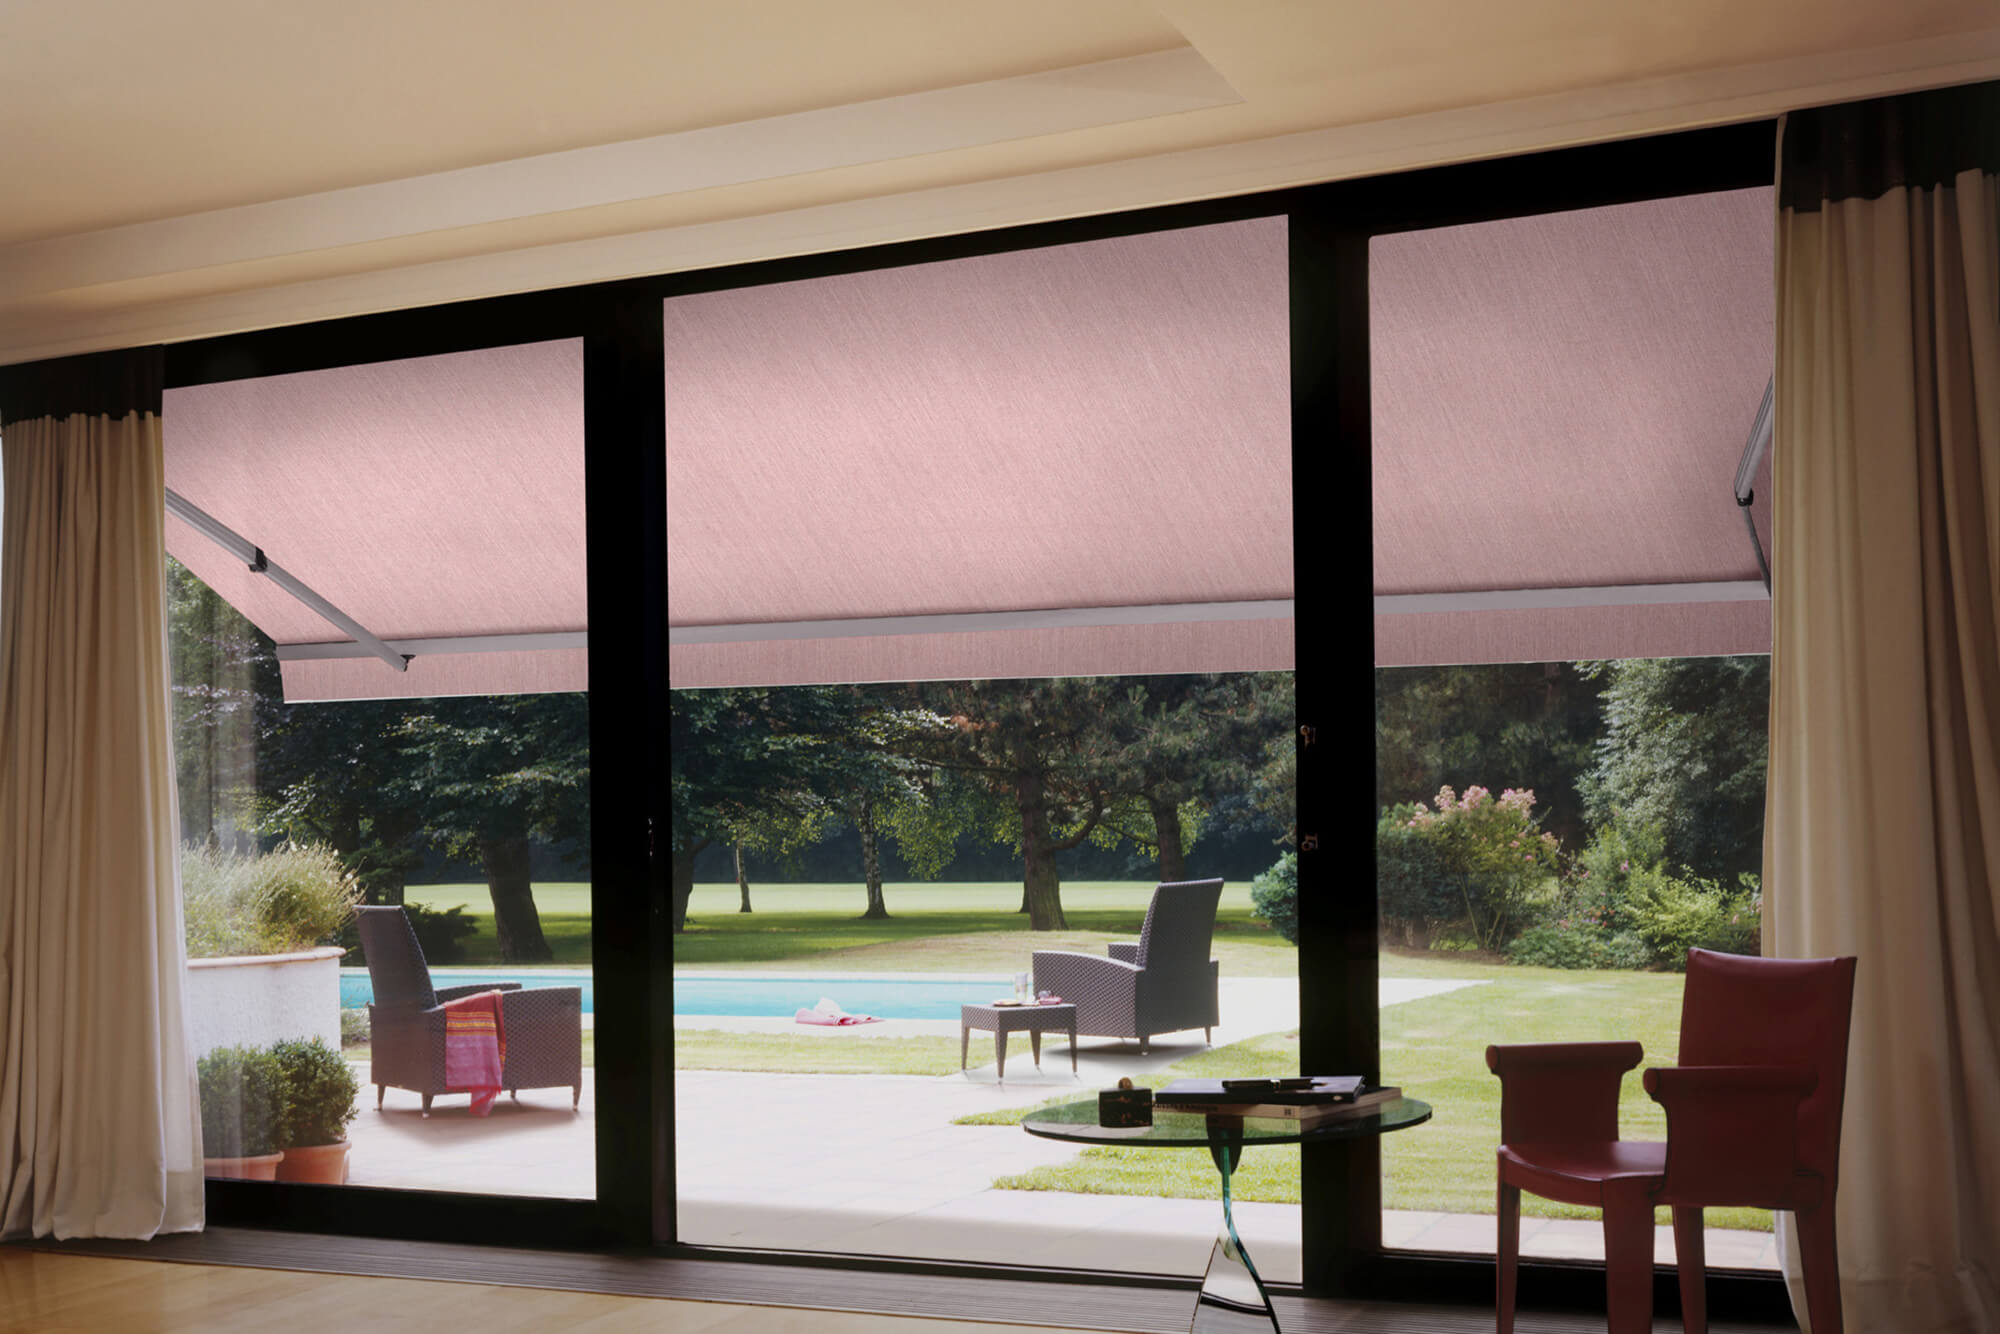 View of retractable awning from the inside of a house